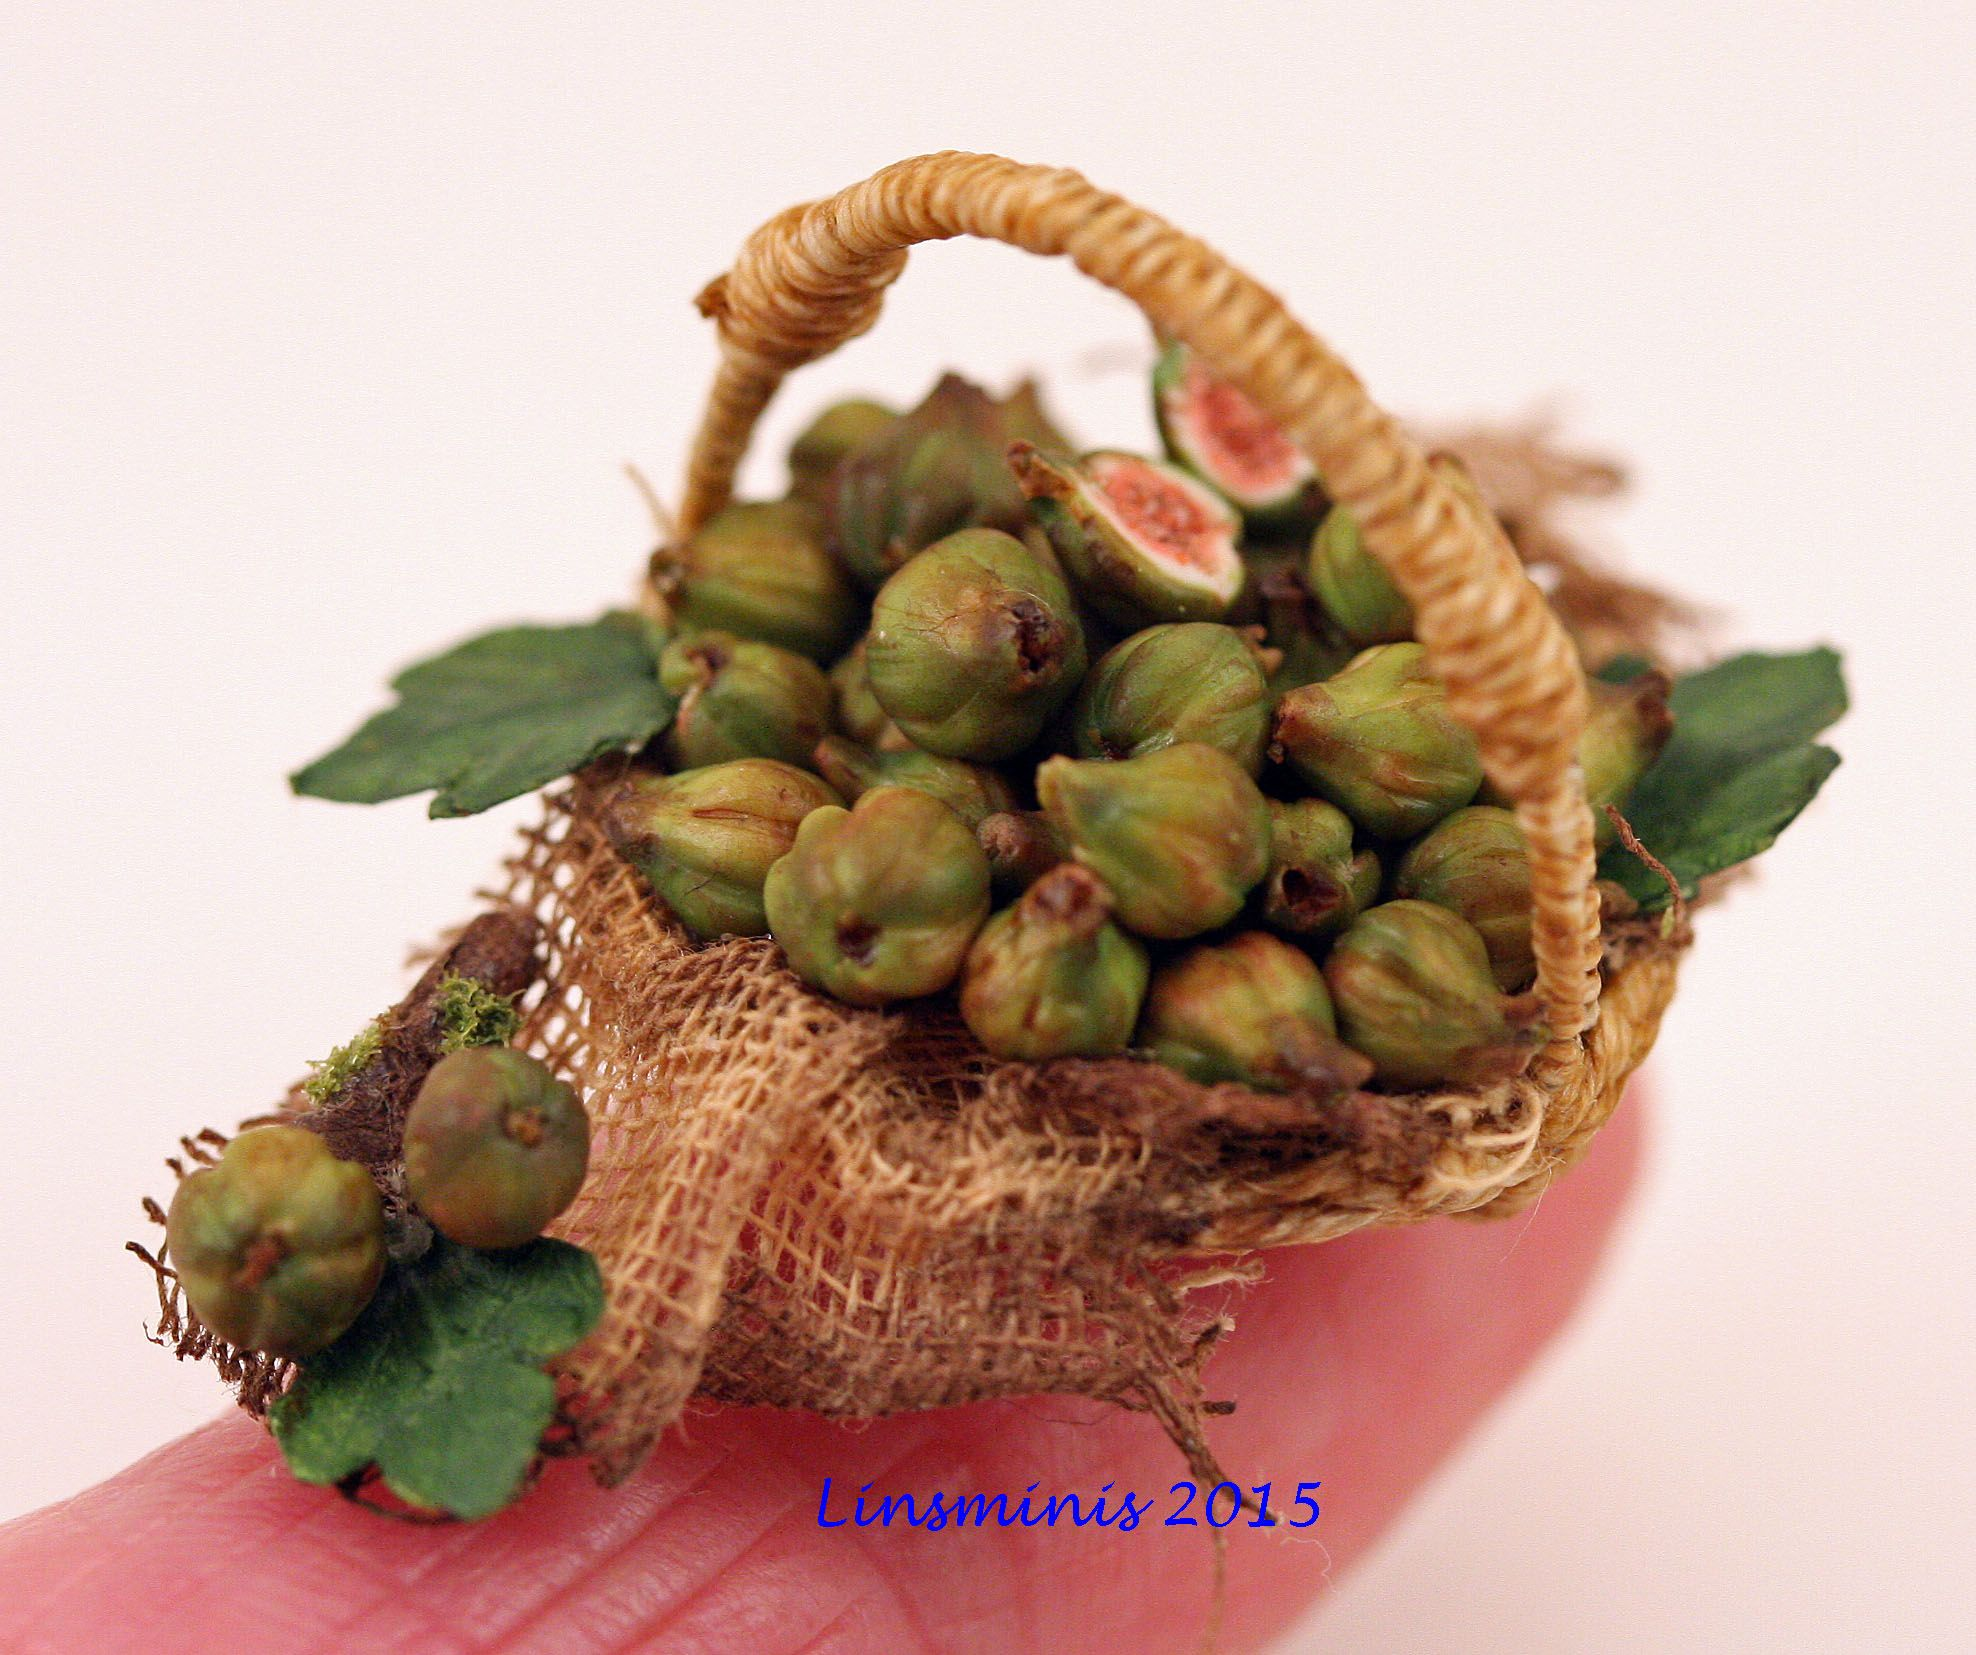 Basket of figs.